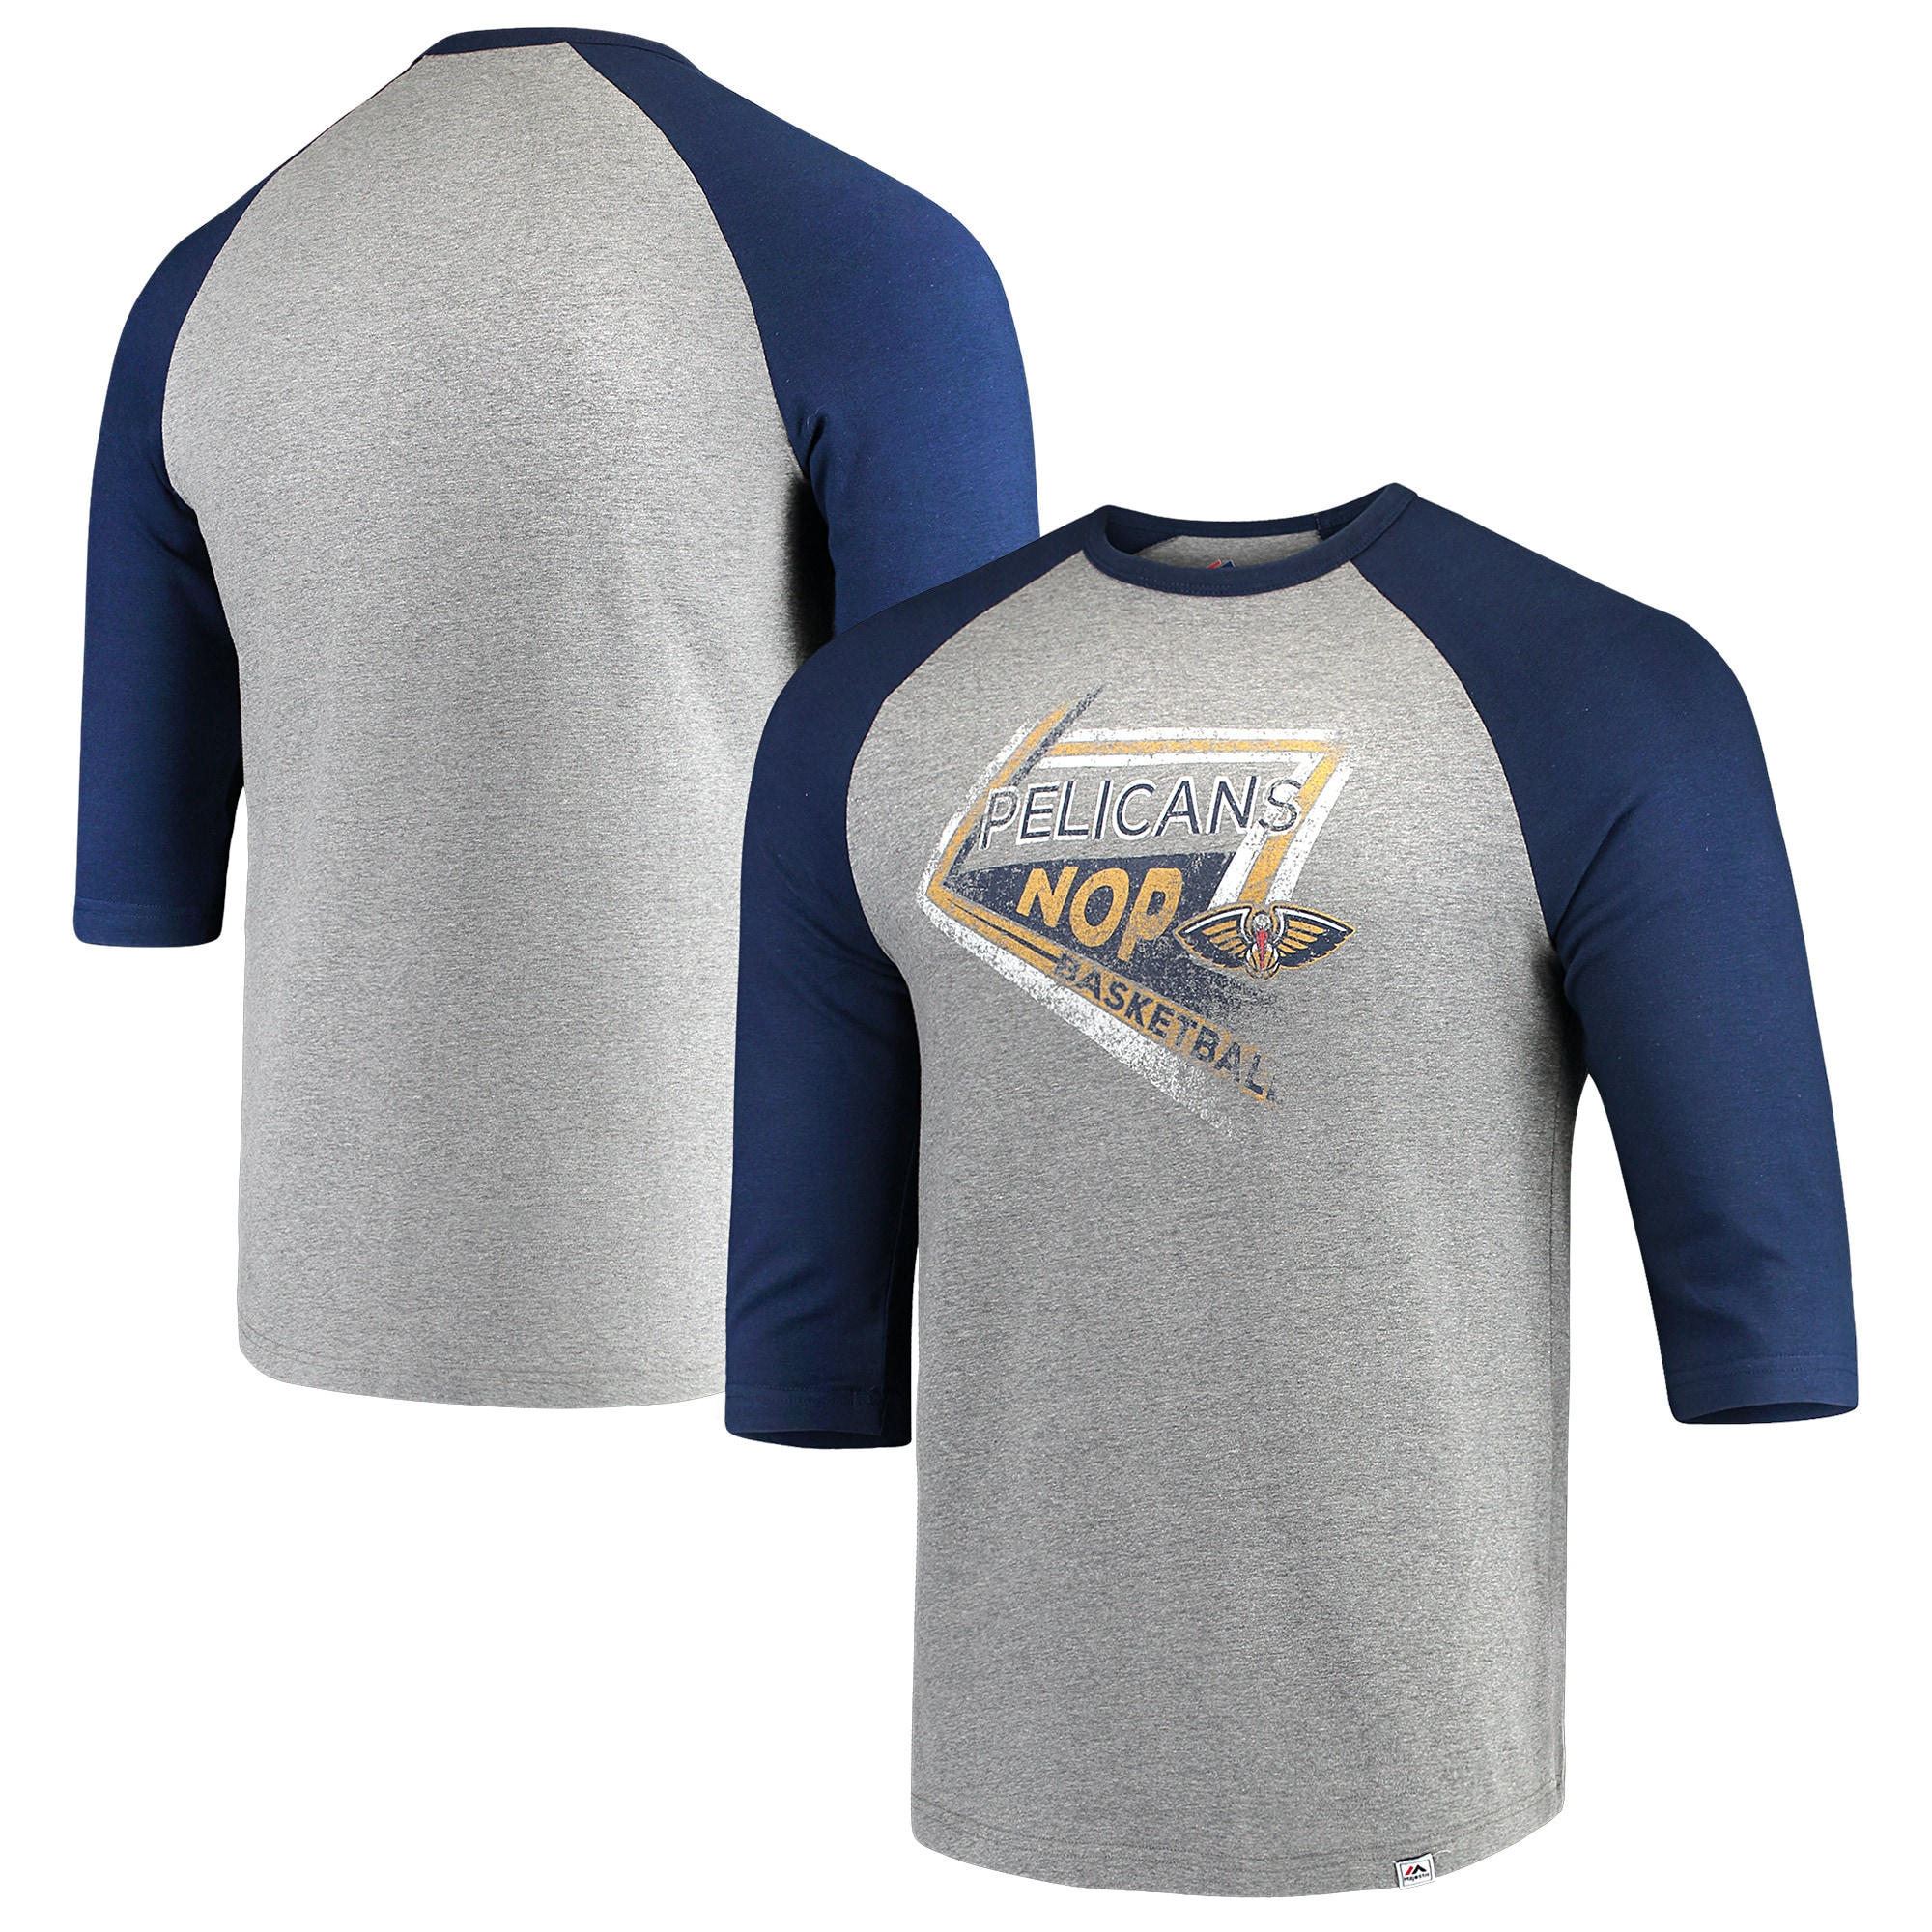 New Orleans Pelicans Majestic Scoring Position Tri-Blend 3/4-Sleeve Raglan T-Shirt - Heathered Gray/Navy